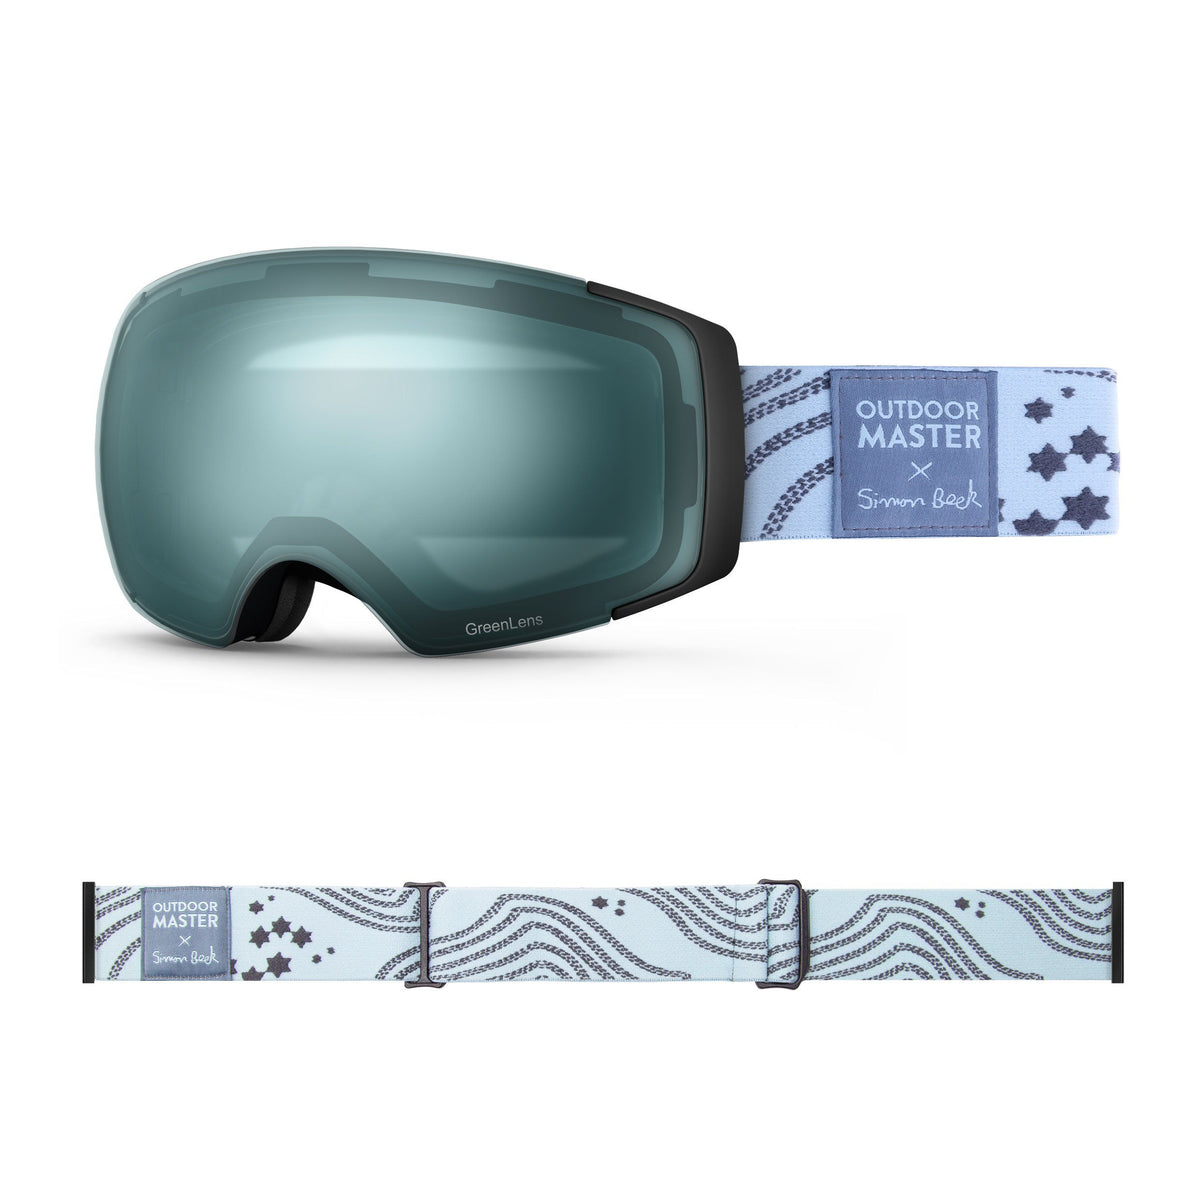 OutdoorMaster x Simon Beck Ski Goggles Pro Series - Snowshoeing Art Limited Edition OutdoorMaster GreenLens VLT 20% TAC Green Polarized Star Road-Lightsteelblue